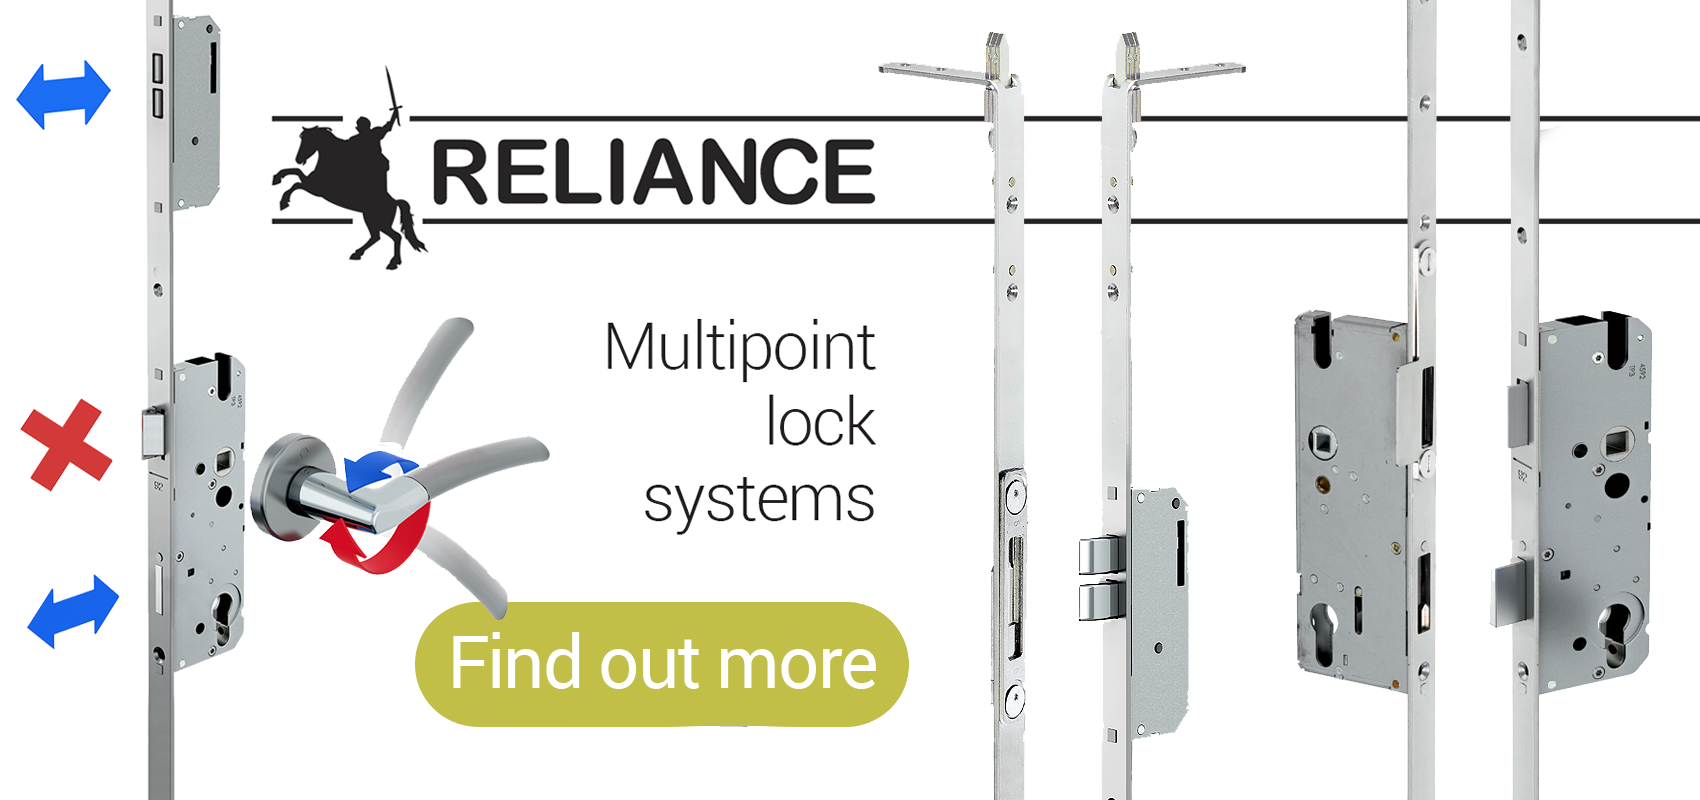 Reliance Multipoint Lock Systems for single and double doors from Quest Hardware